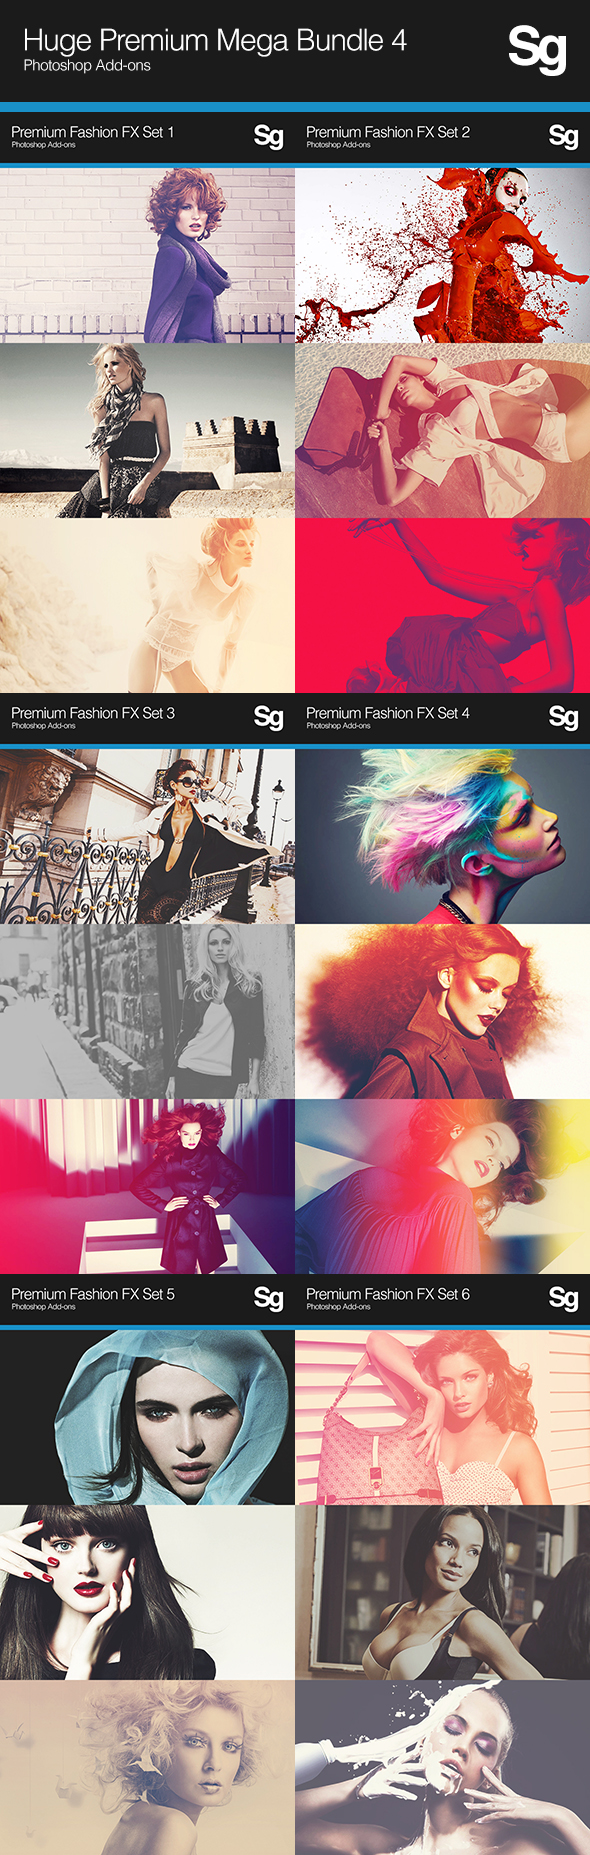 GraphicRiver Huge Premium Mega Bundle 4 7819840